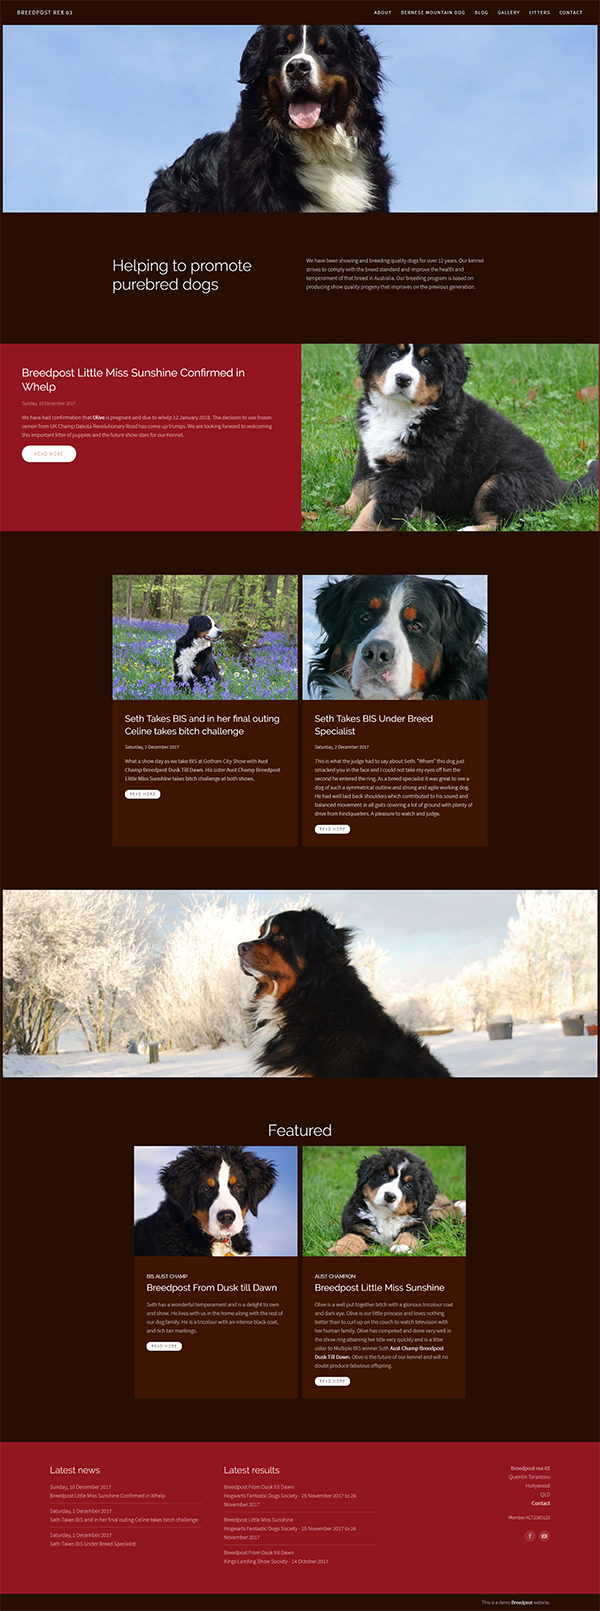 Dog breeder and show dog web design template. | Breedpost website ...